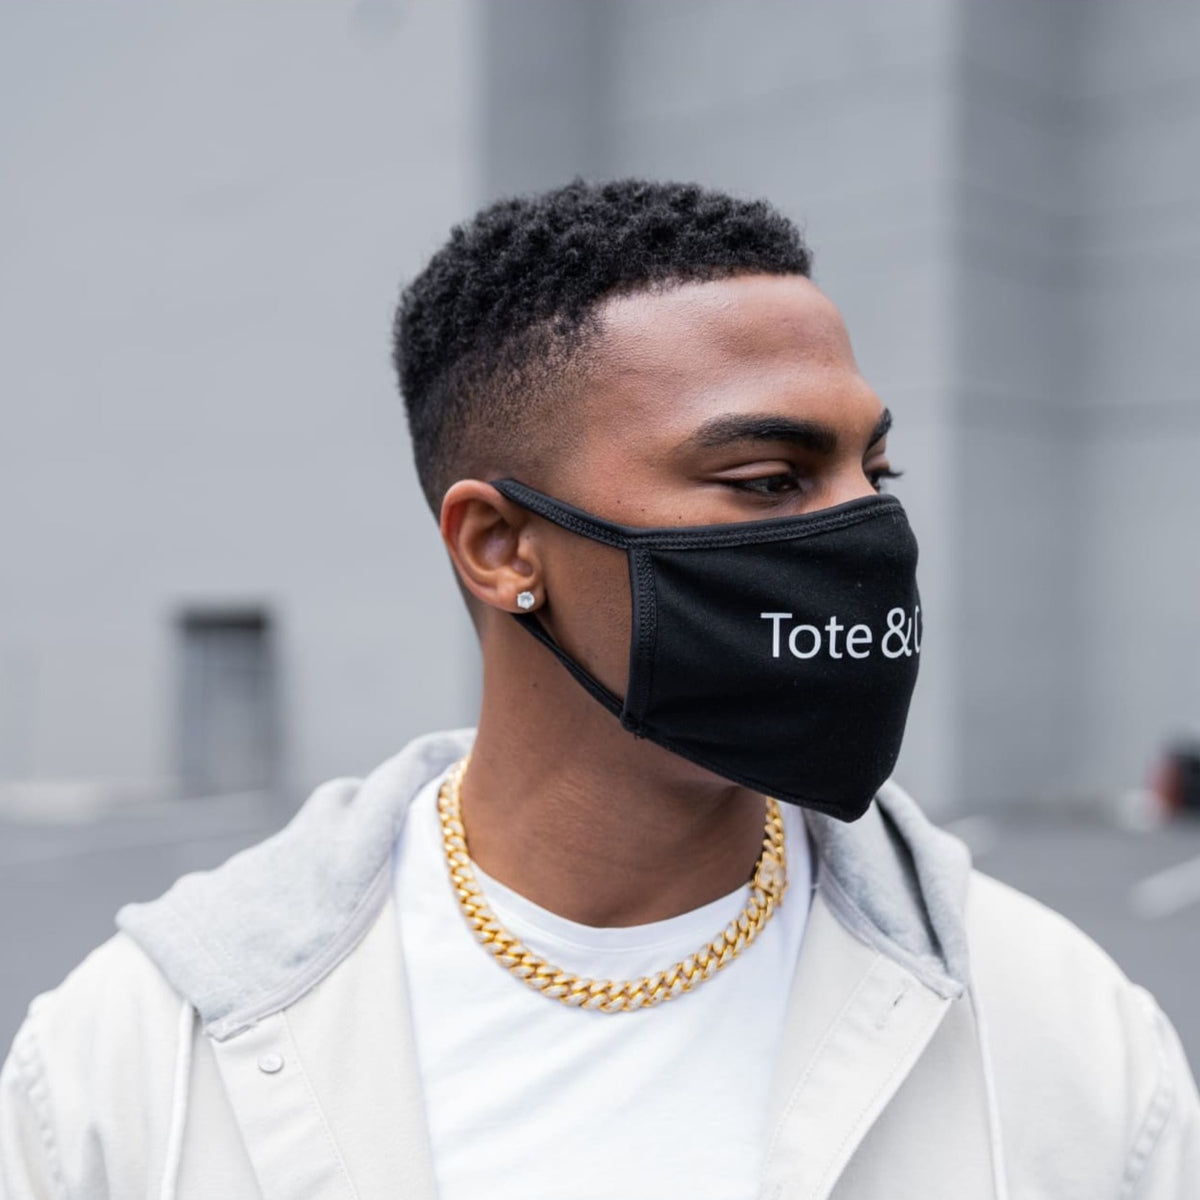 Tote&Carry Black Cotton Face Mask - Tote&Carry